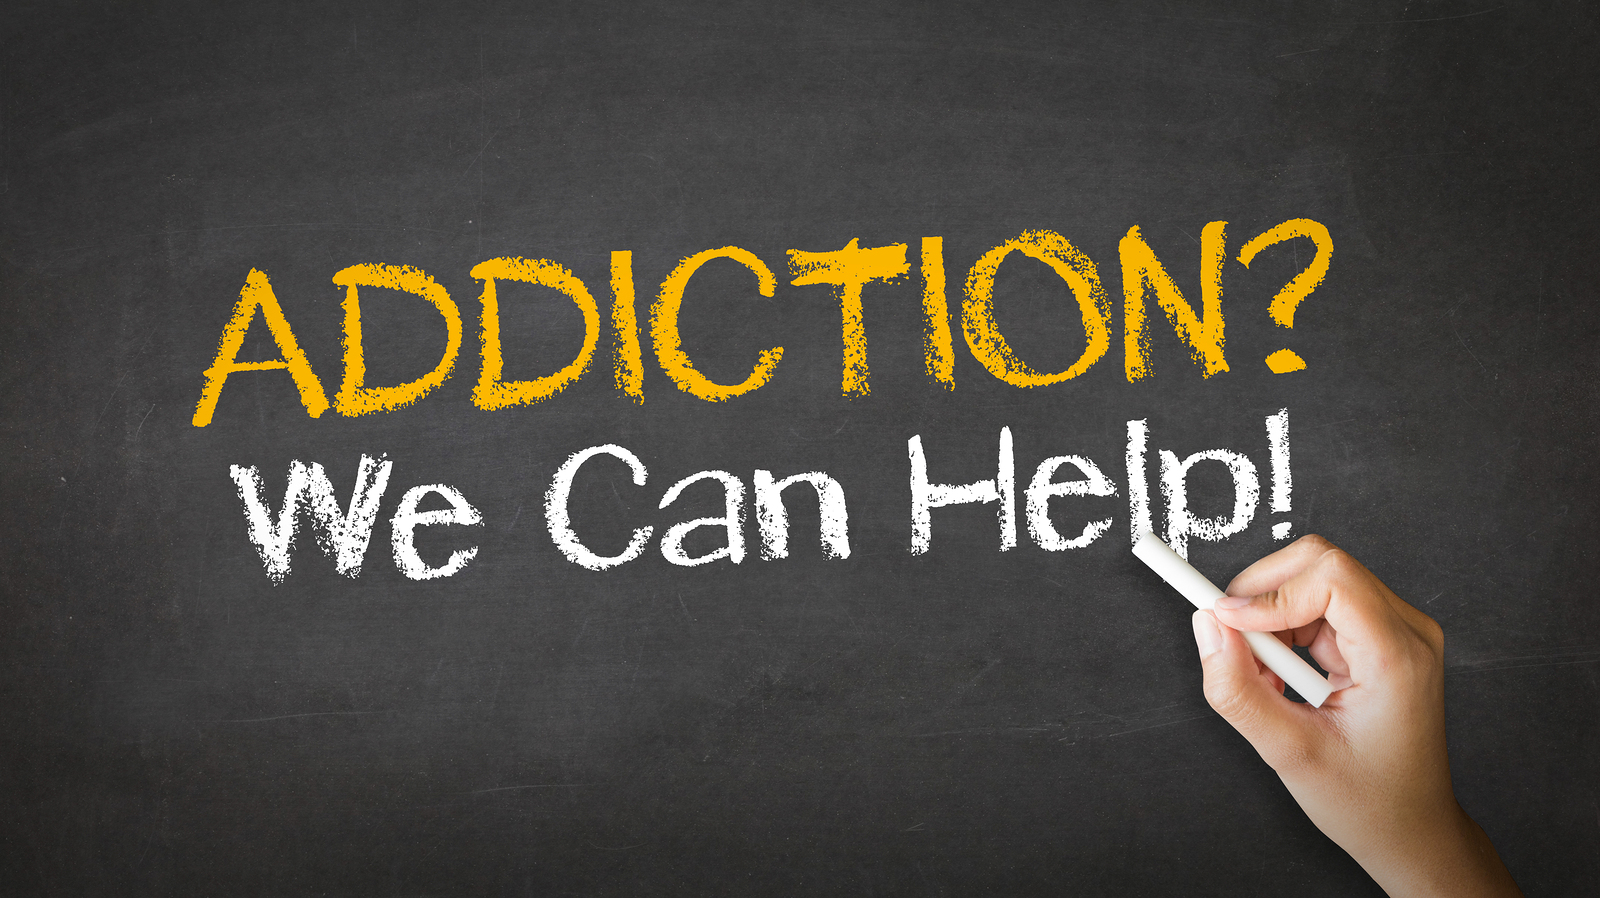 bigstock-Addiction-We-Can-Help-Chalk-Il-47916995